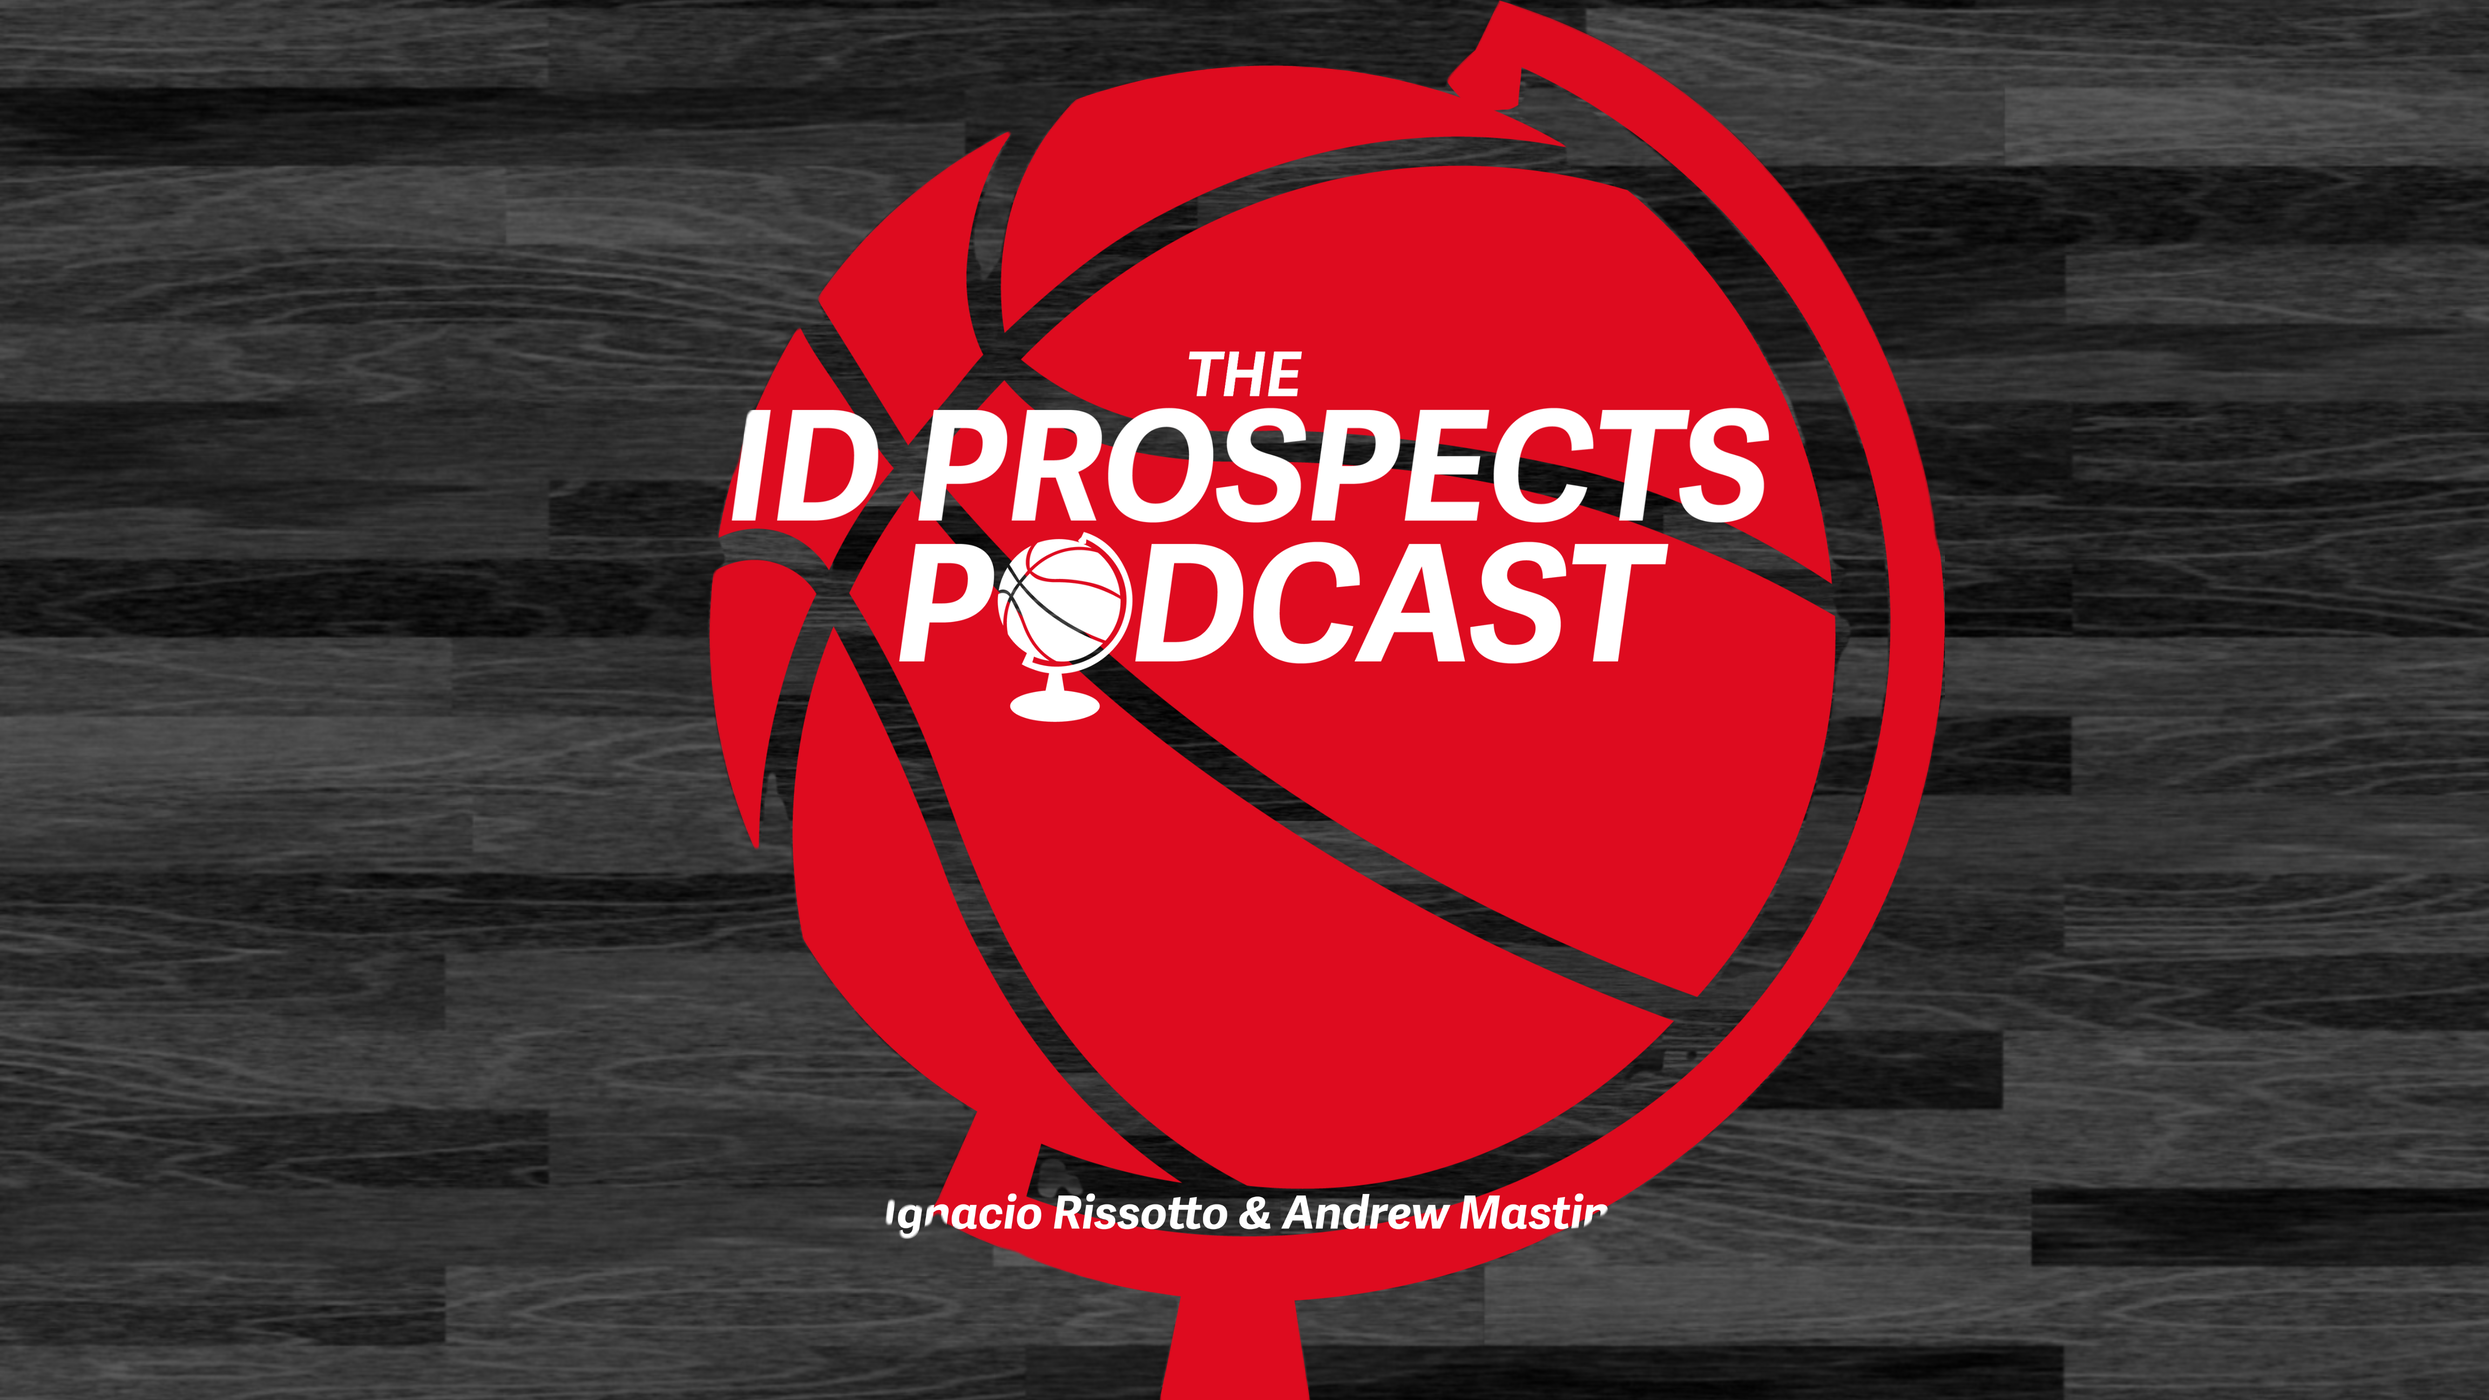 https://id-prospects.com/the-id-prospects-podcast-episode-7-angt-valencia-recap/